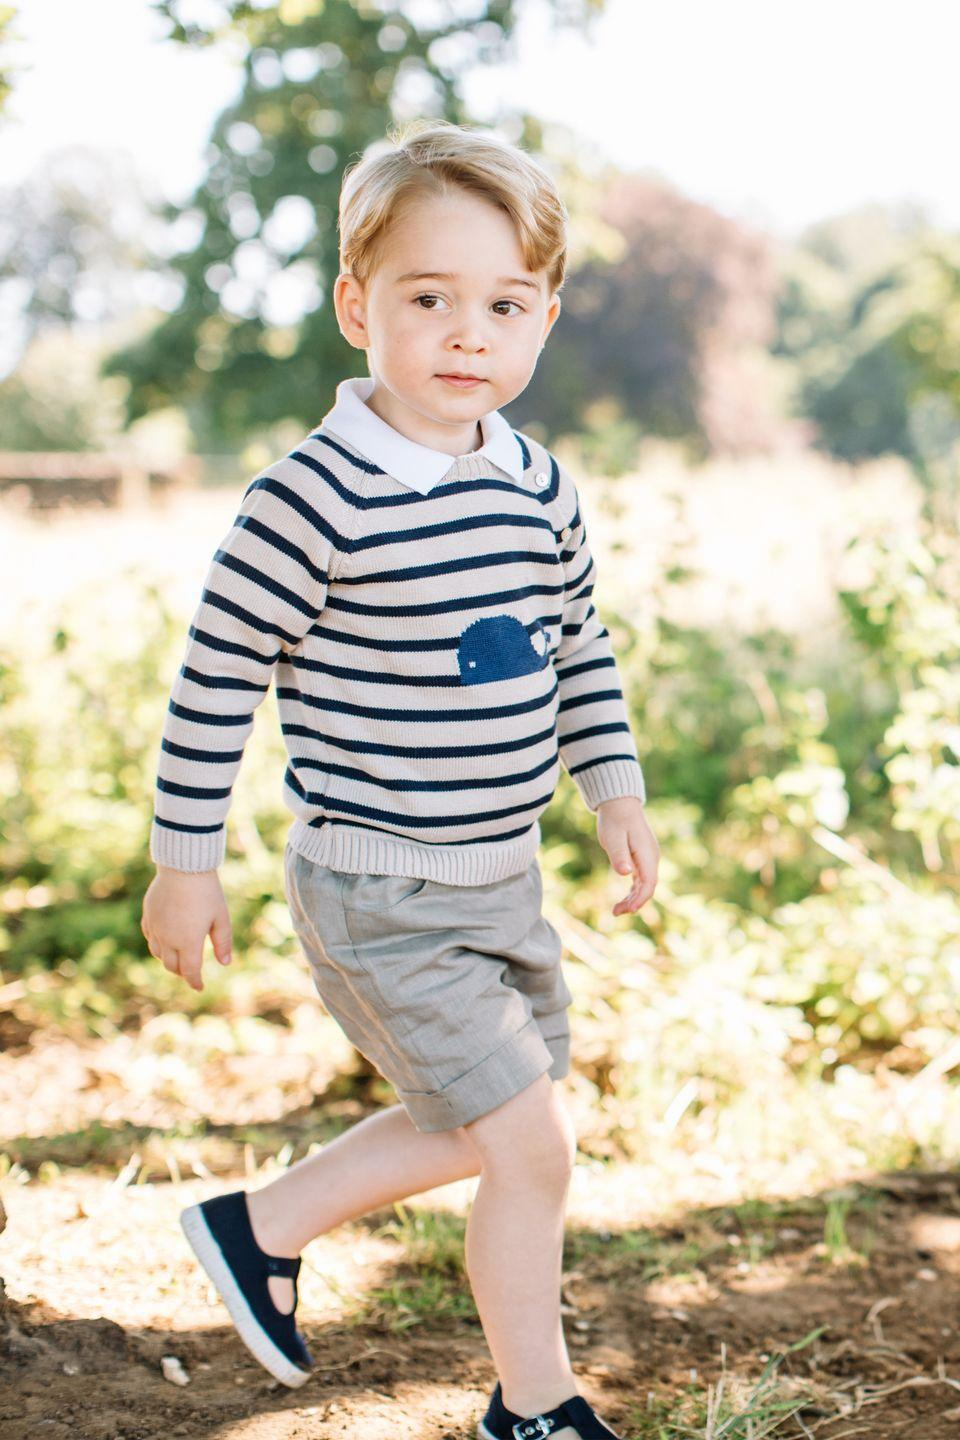 <p>Ahead of his third birthday, the royal family releases photos of the young prince taken at their home in Norfolk.</p>